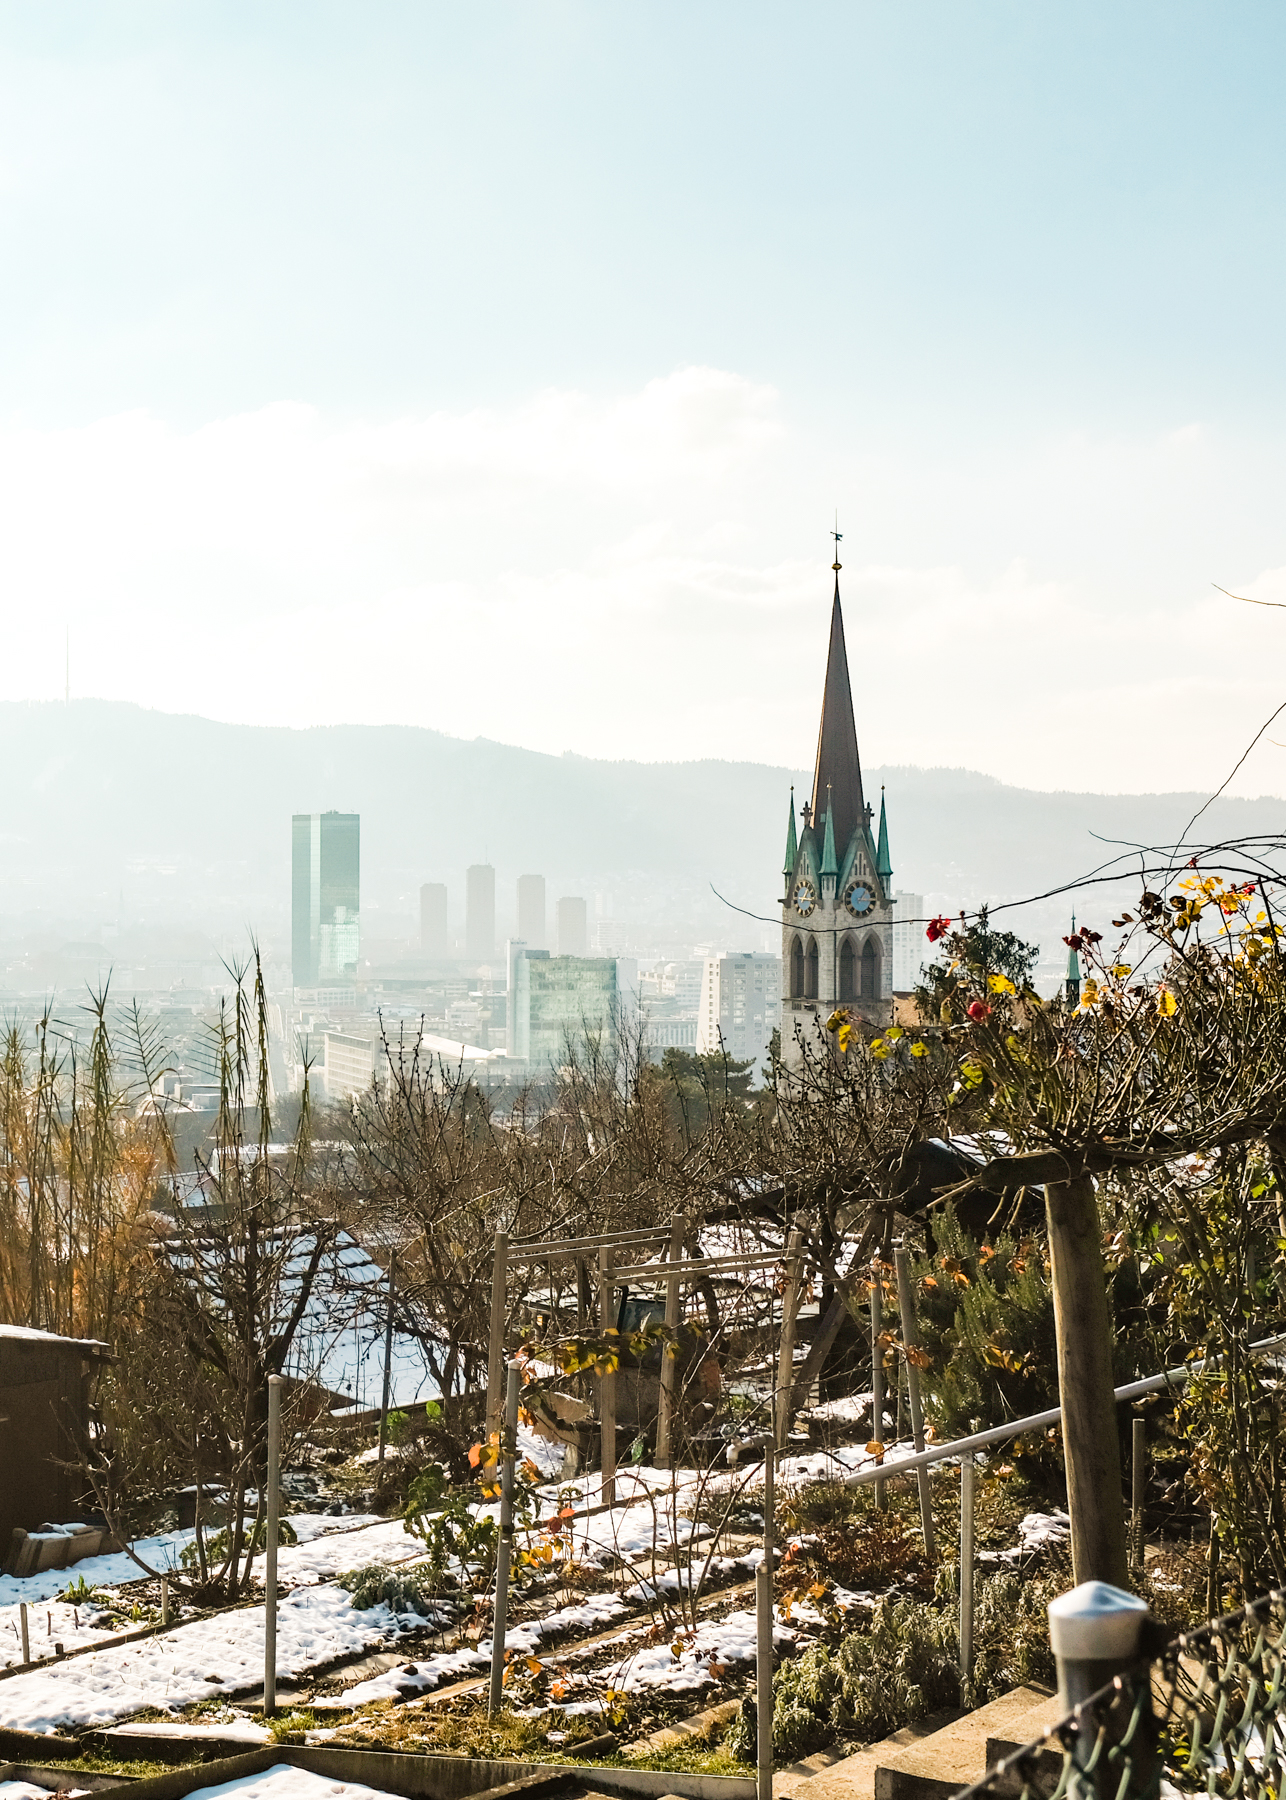 A viewpoint overlooking Zurich's Limmat Valley